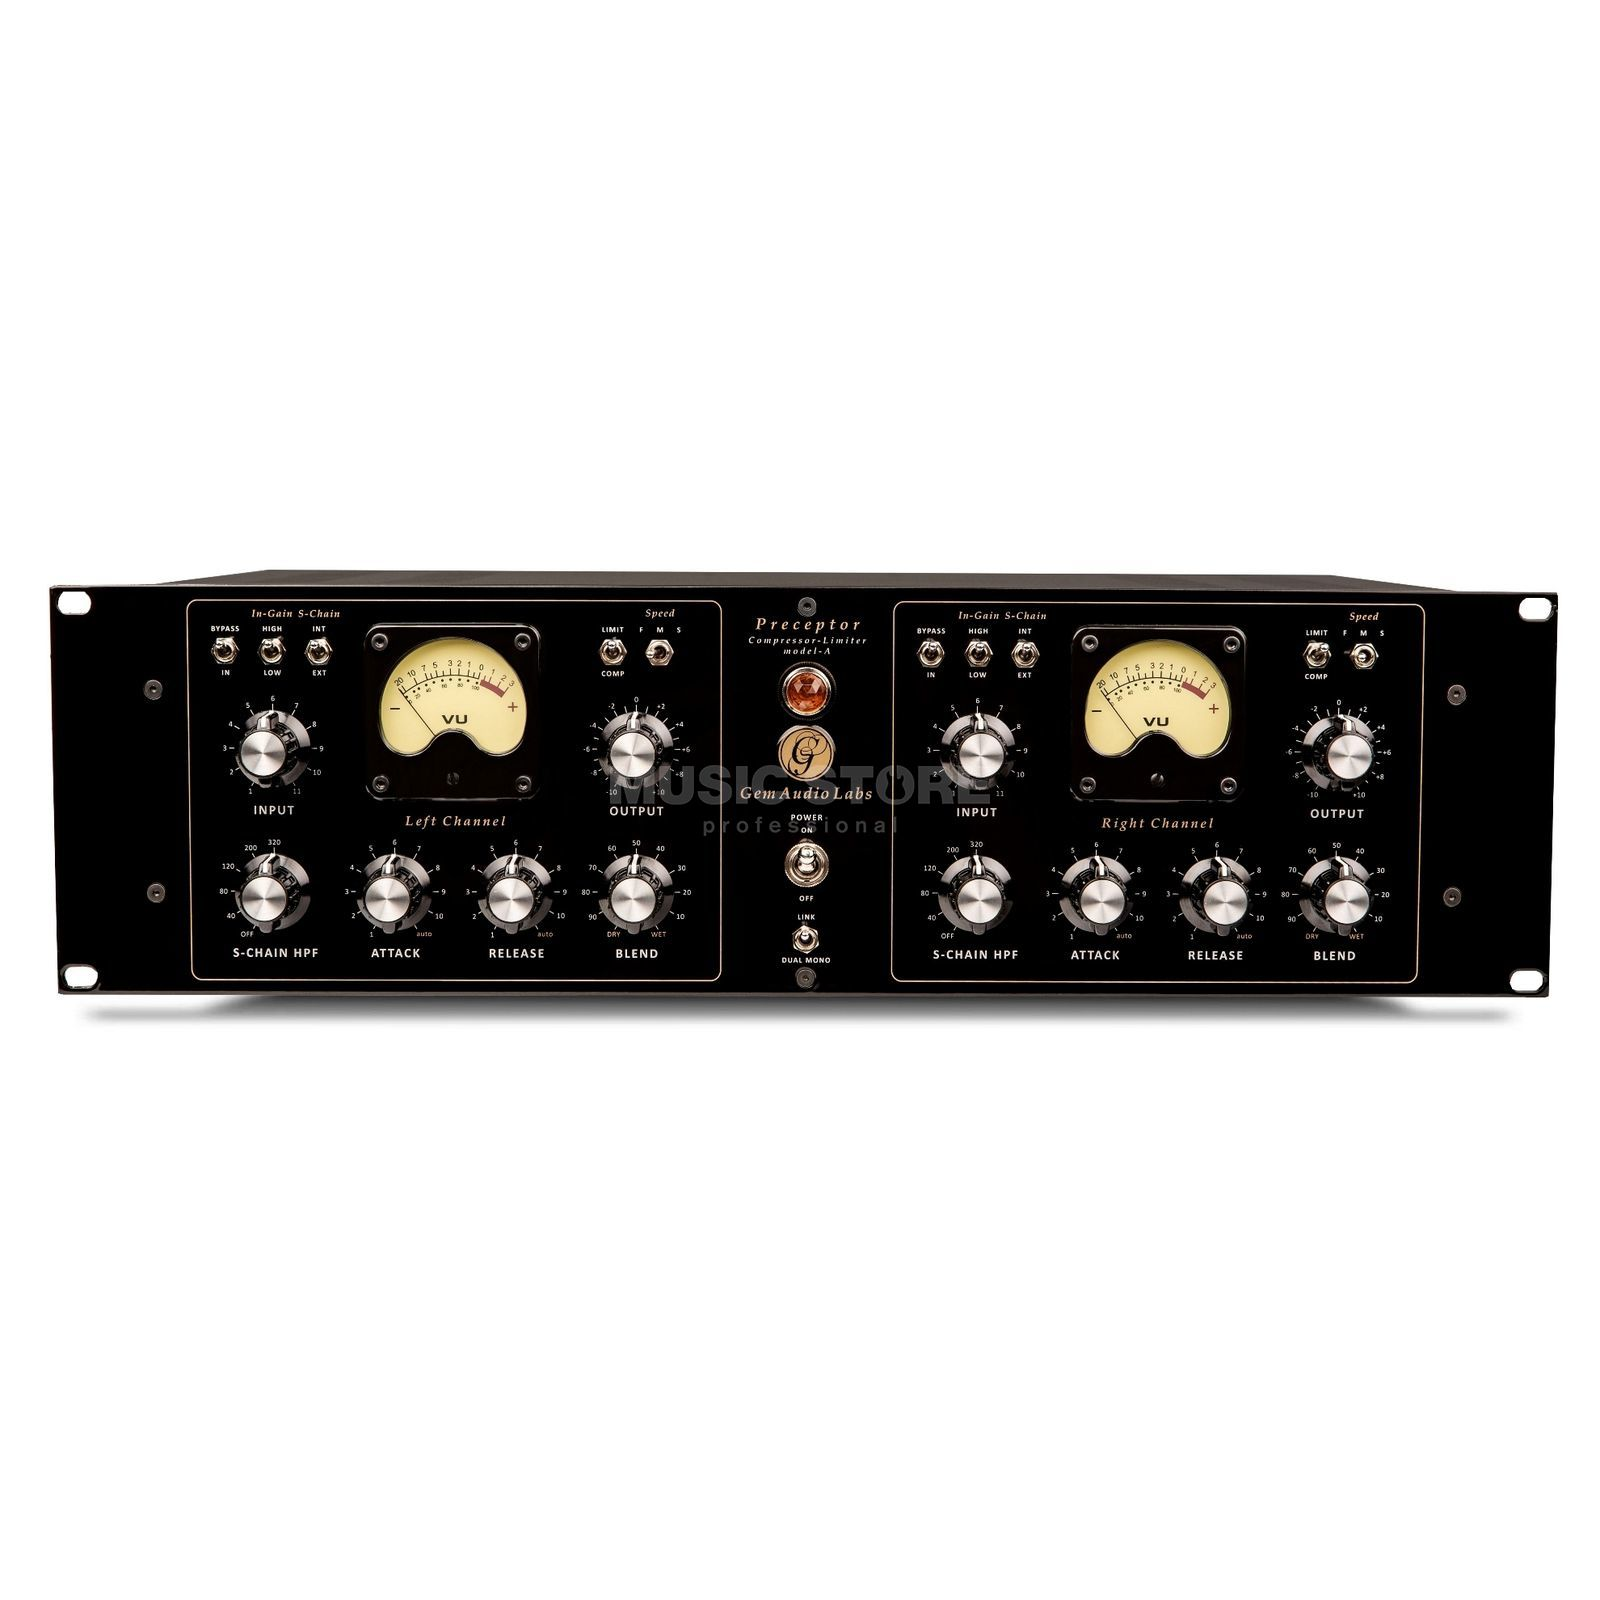 Gem Audio Labs Preceptor Model A 2-Channel Compressor/Limiter Produktbillede